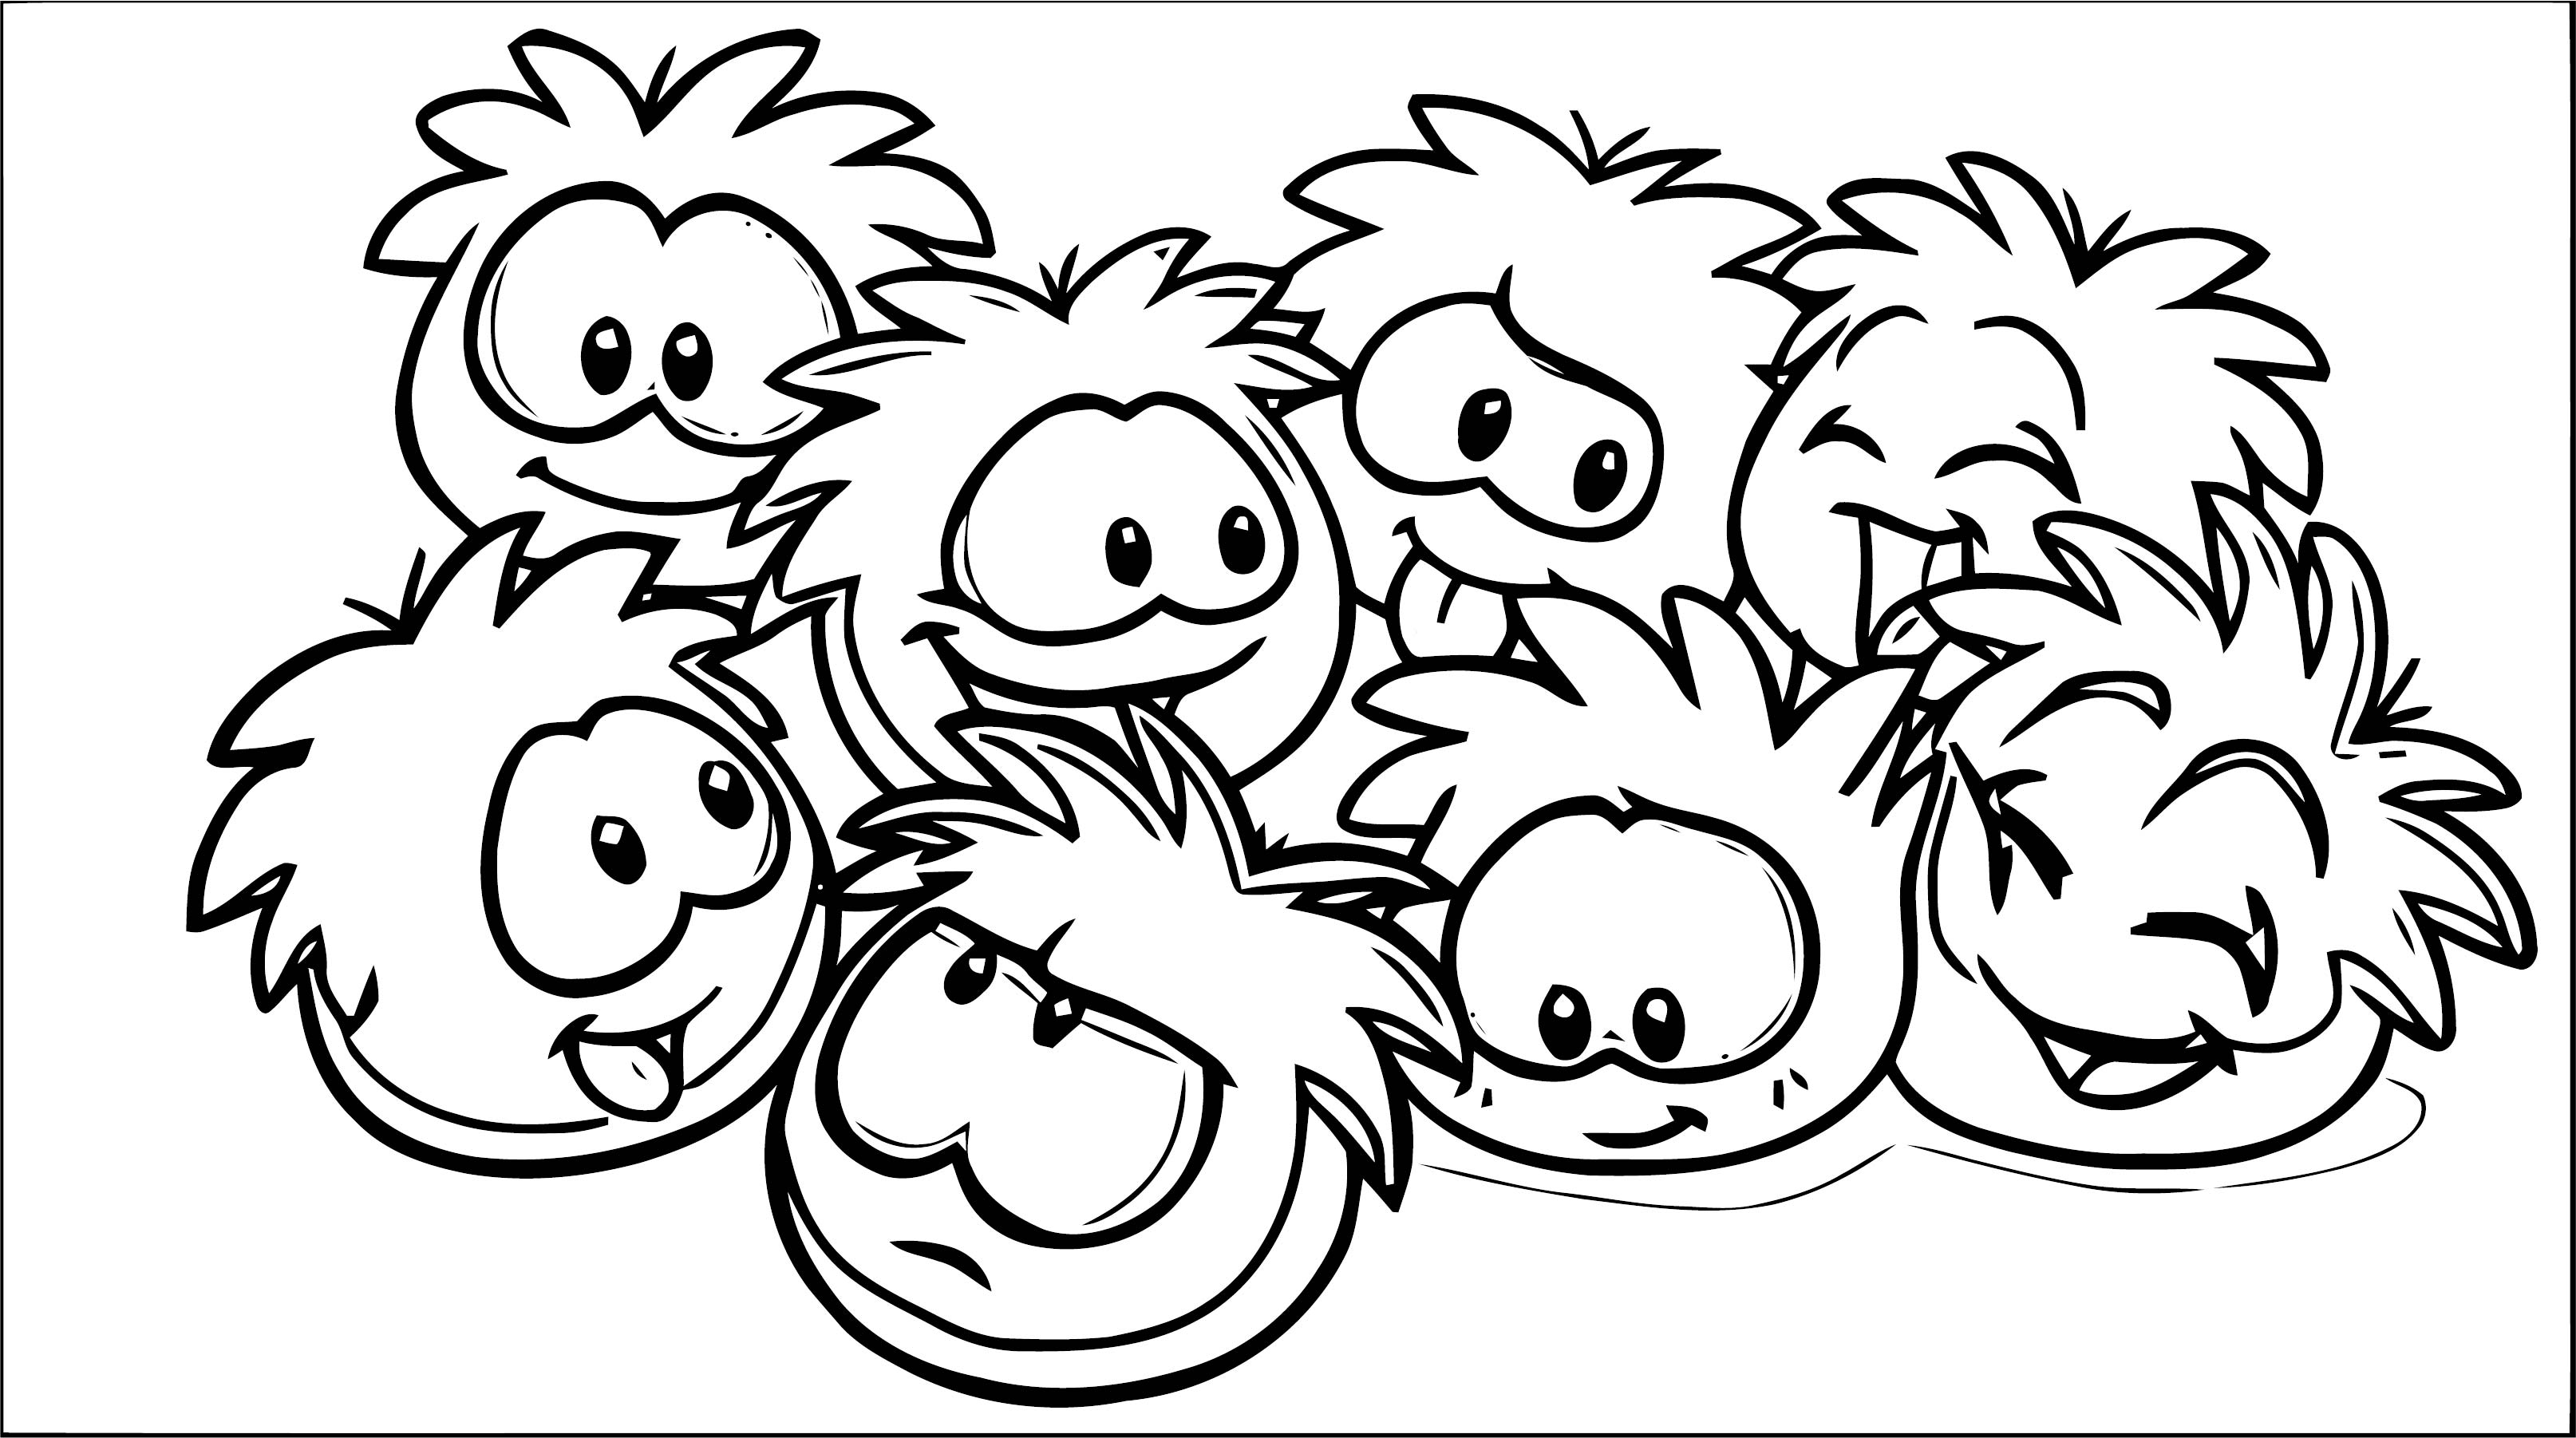 Clubpenguin Puffles Coloring Page